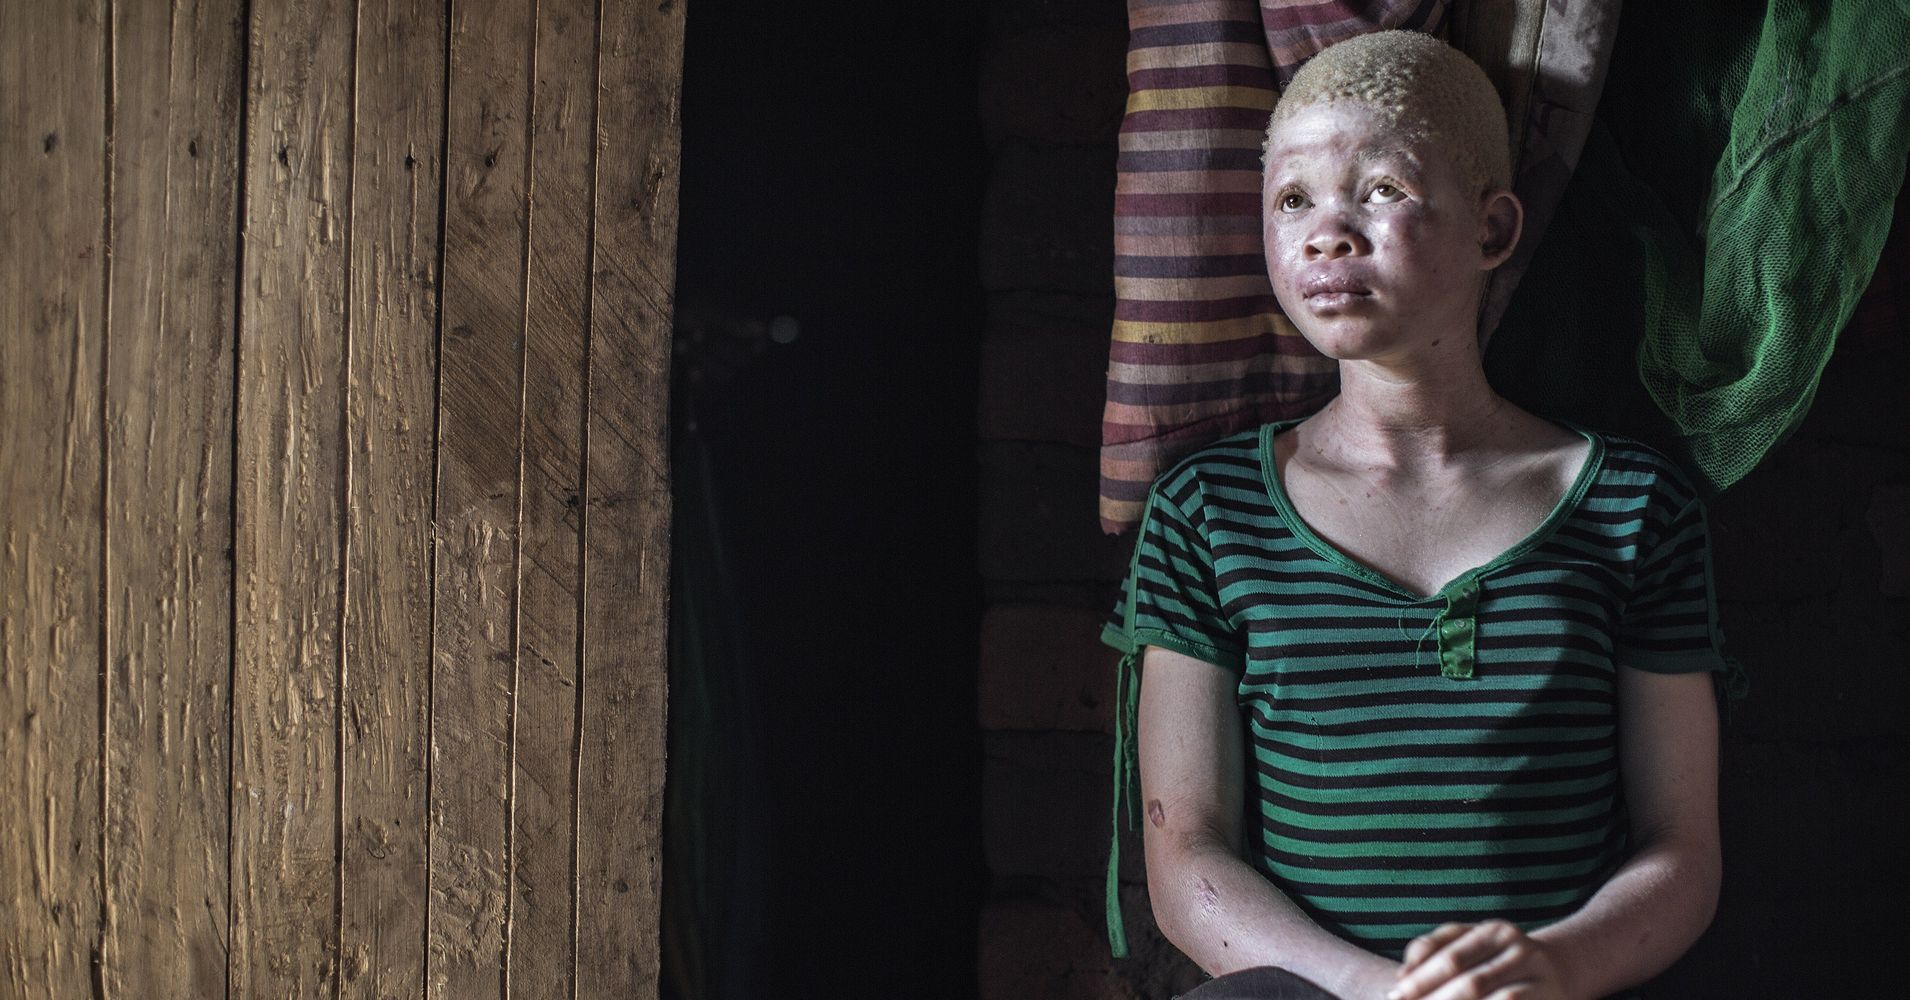 Attacks On Albinos Grow In Malawi As Body Parts Are Sold